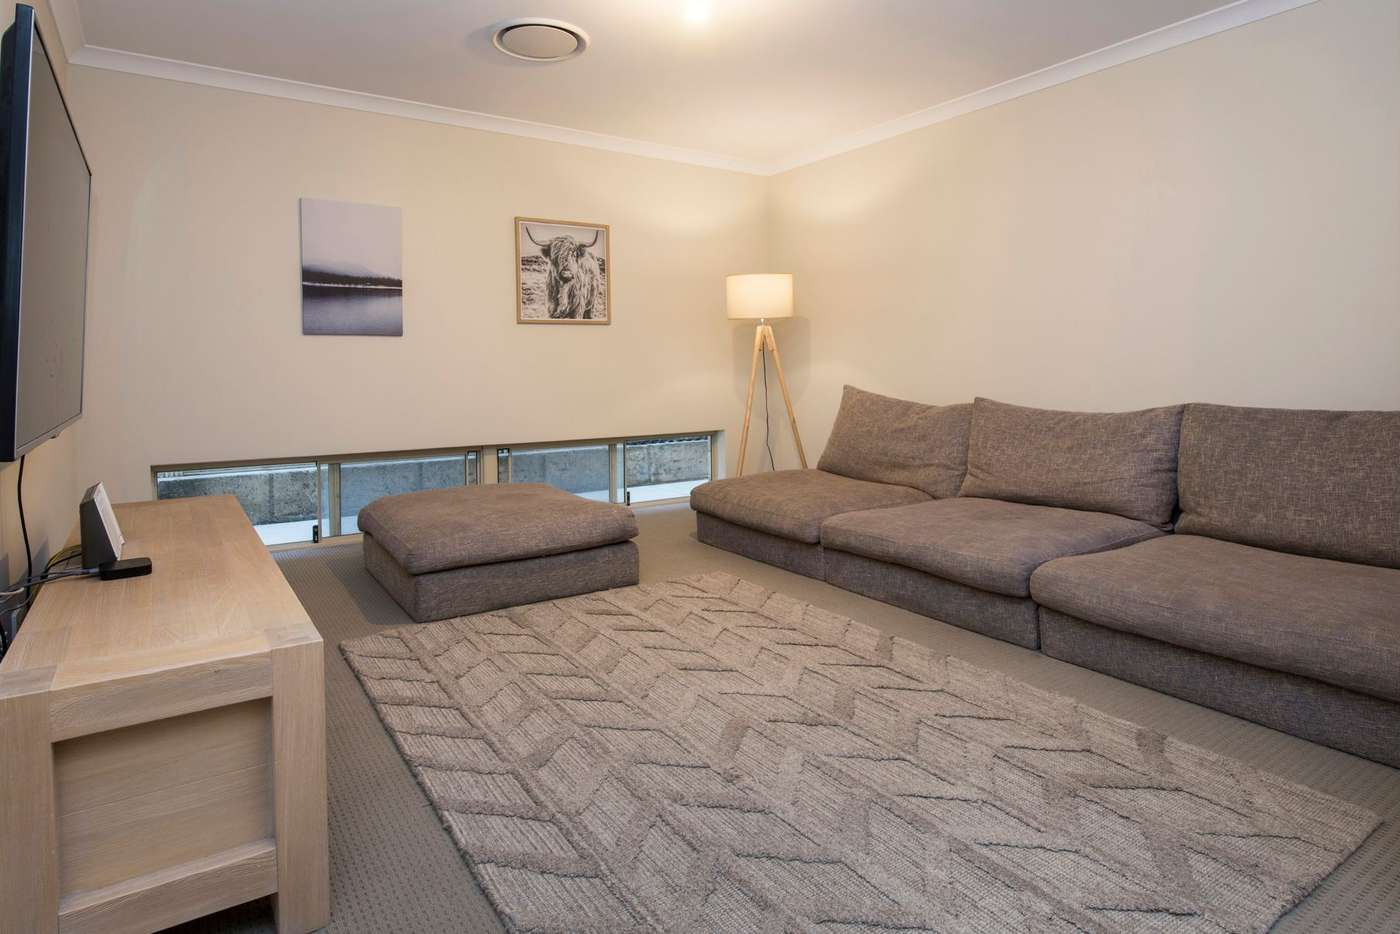 Fifth view of Homely house listing, 18 Cape Way, Dunsborough WA 6281